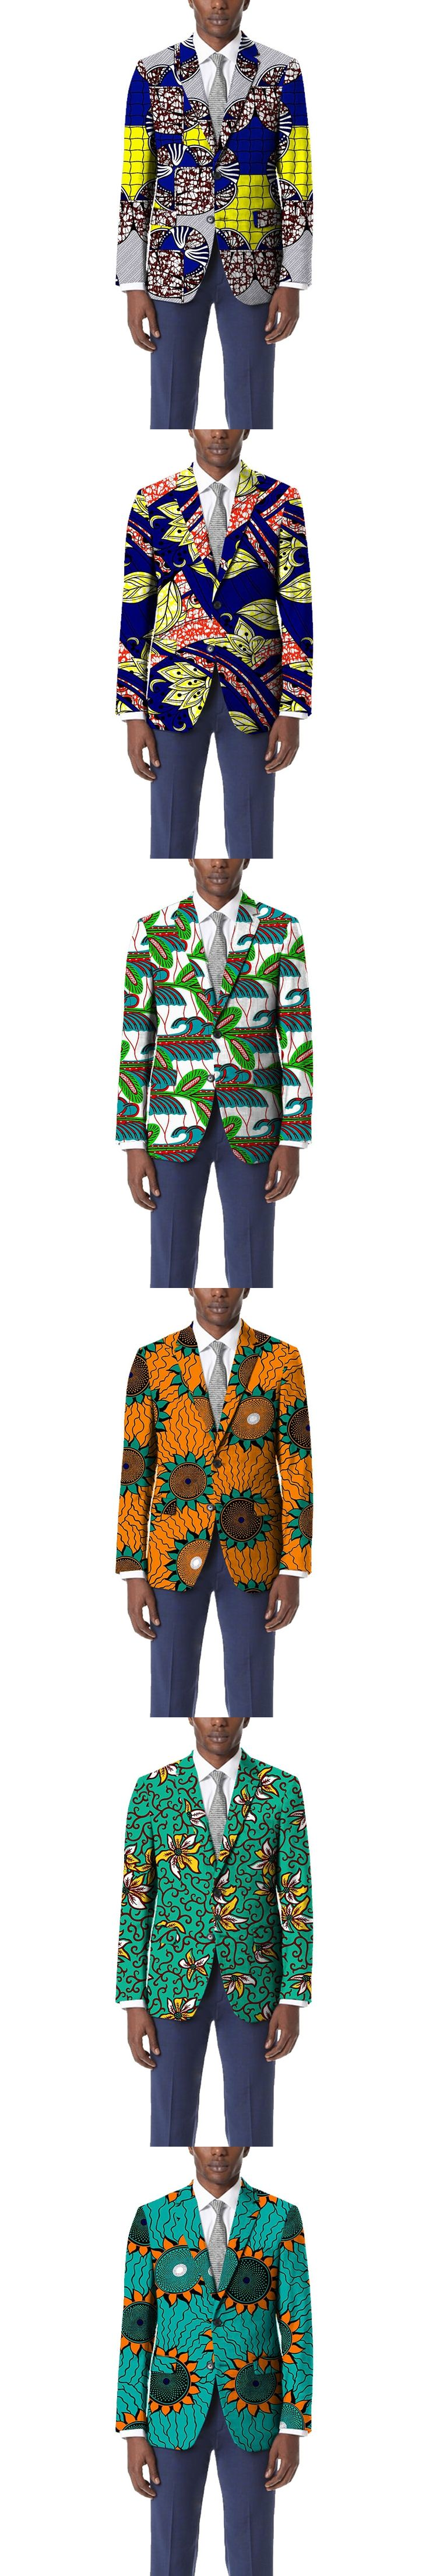 Personal tailor dashiki suit african garish colors print blazer mens limited pattern african suit of africa clothing for wedding